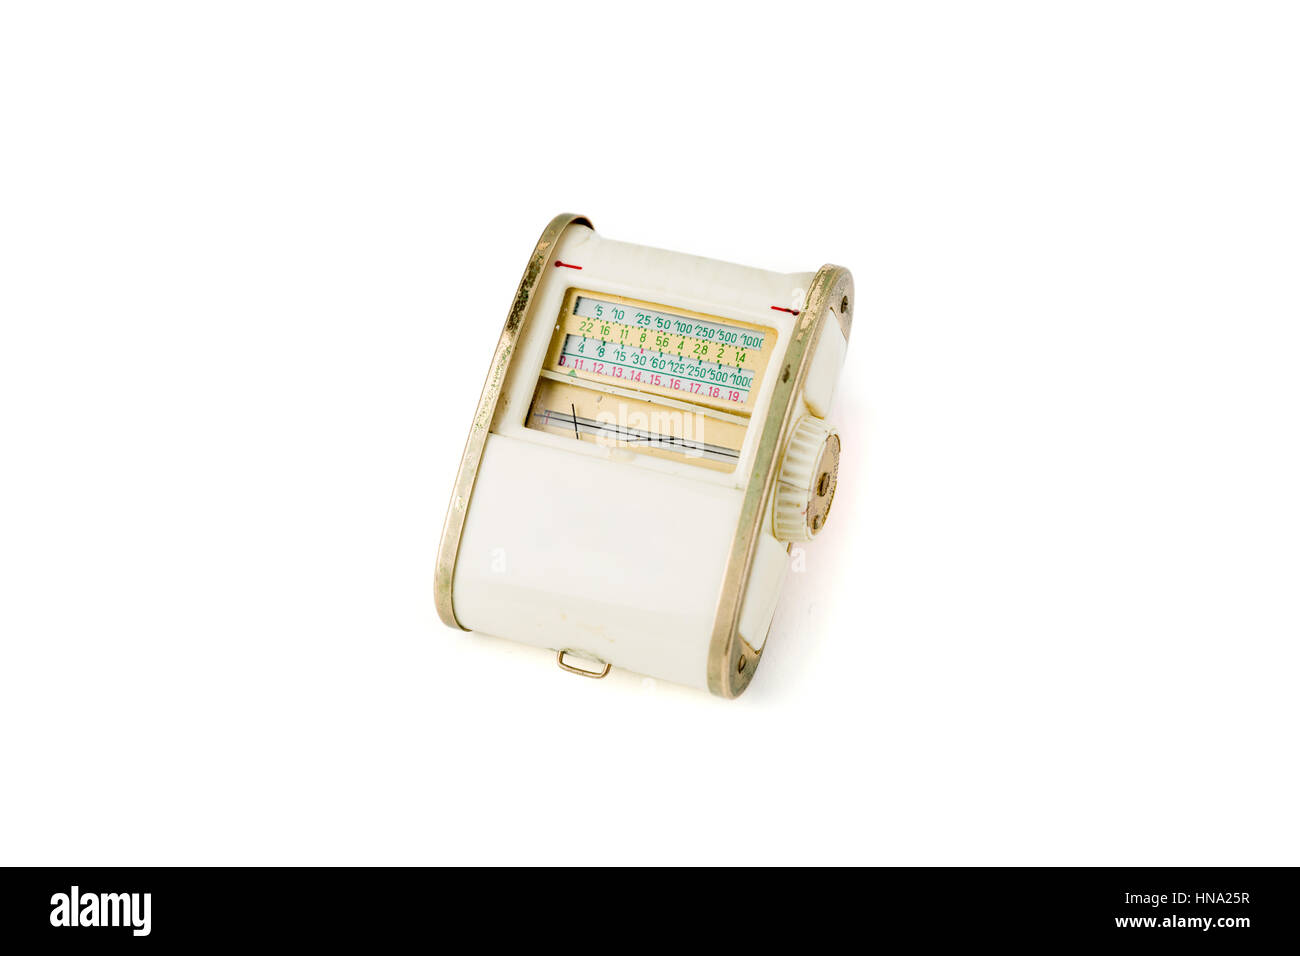 Vintage white light meter isolated on white background. Studio shot. Front View. - Stock Image